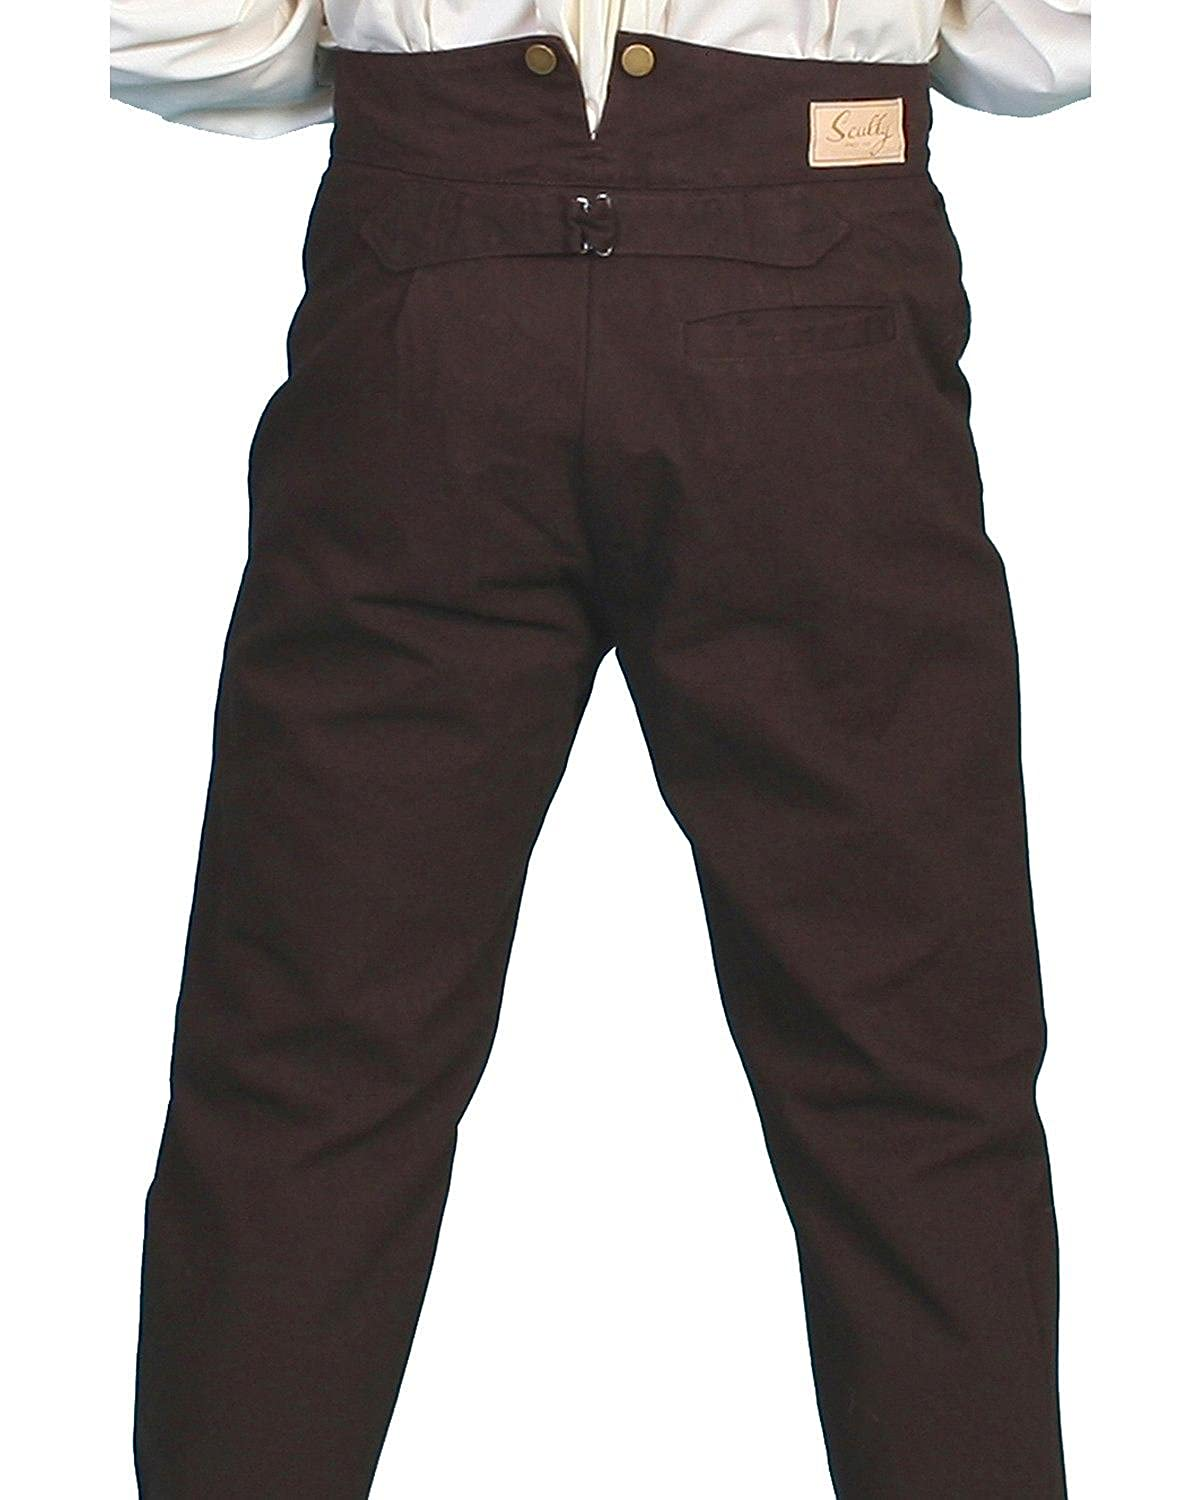 Edwardian Men's Pants, Trousers, Overalls Scully Rangewear Mens Rangewear Canvas Pants $51.90 AT vintagedancer.com